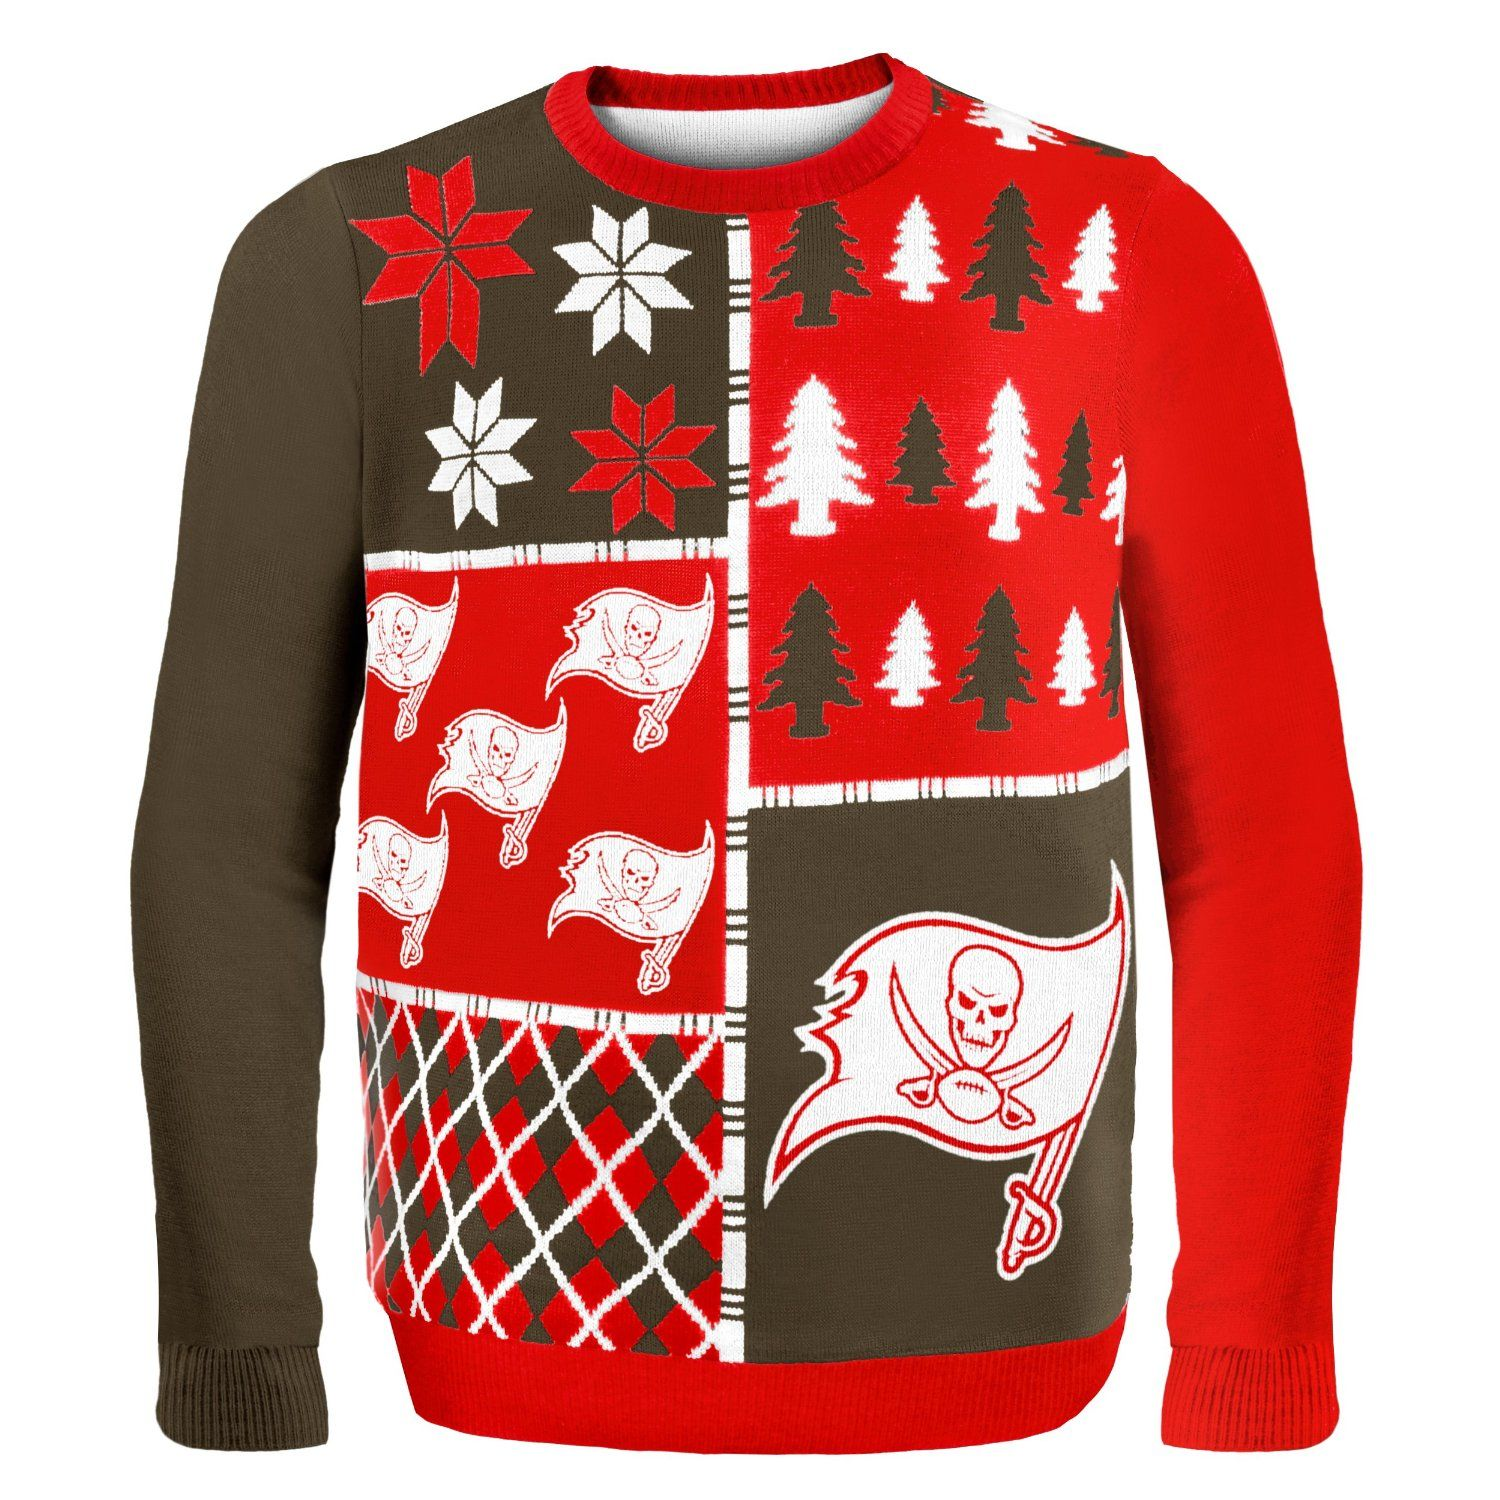 online store 3938c 3fcb1 NFL Busy Block Ugly Sweater - Tampa Bay Buccaneers | NFL-NFC ...